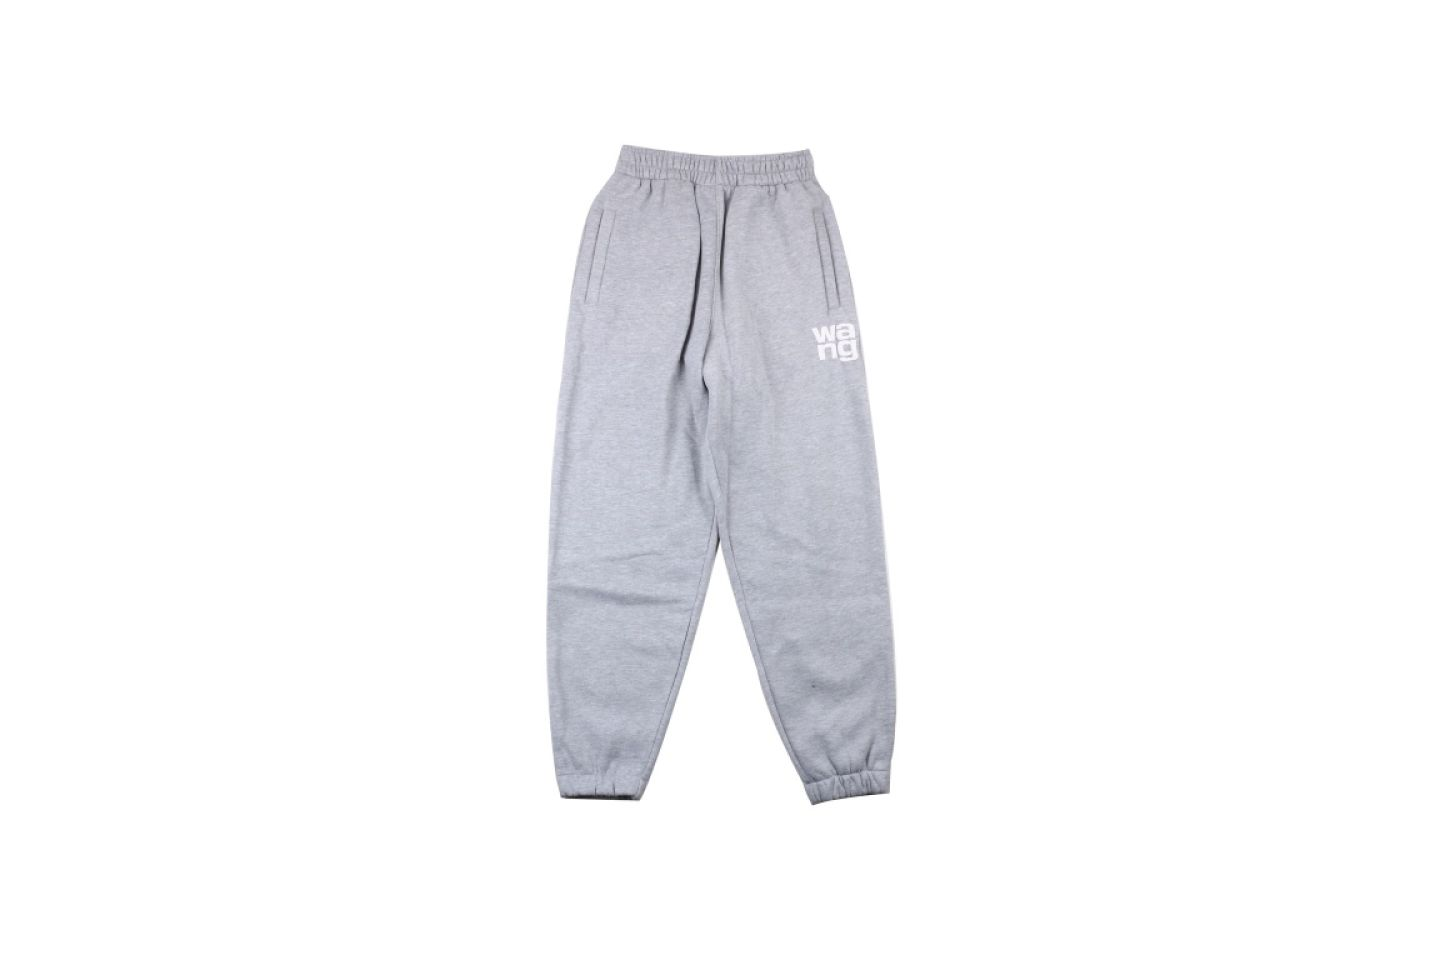 Pants Alexander Wang velvet sweatpants 1 alexander_wang_velvet_sweatpants_1